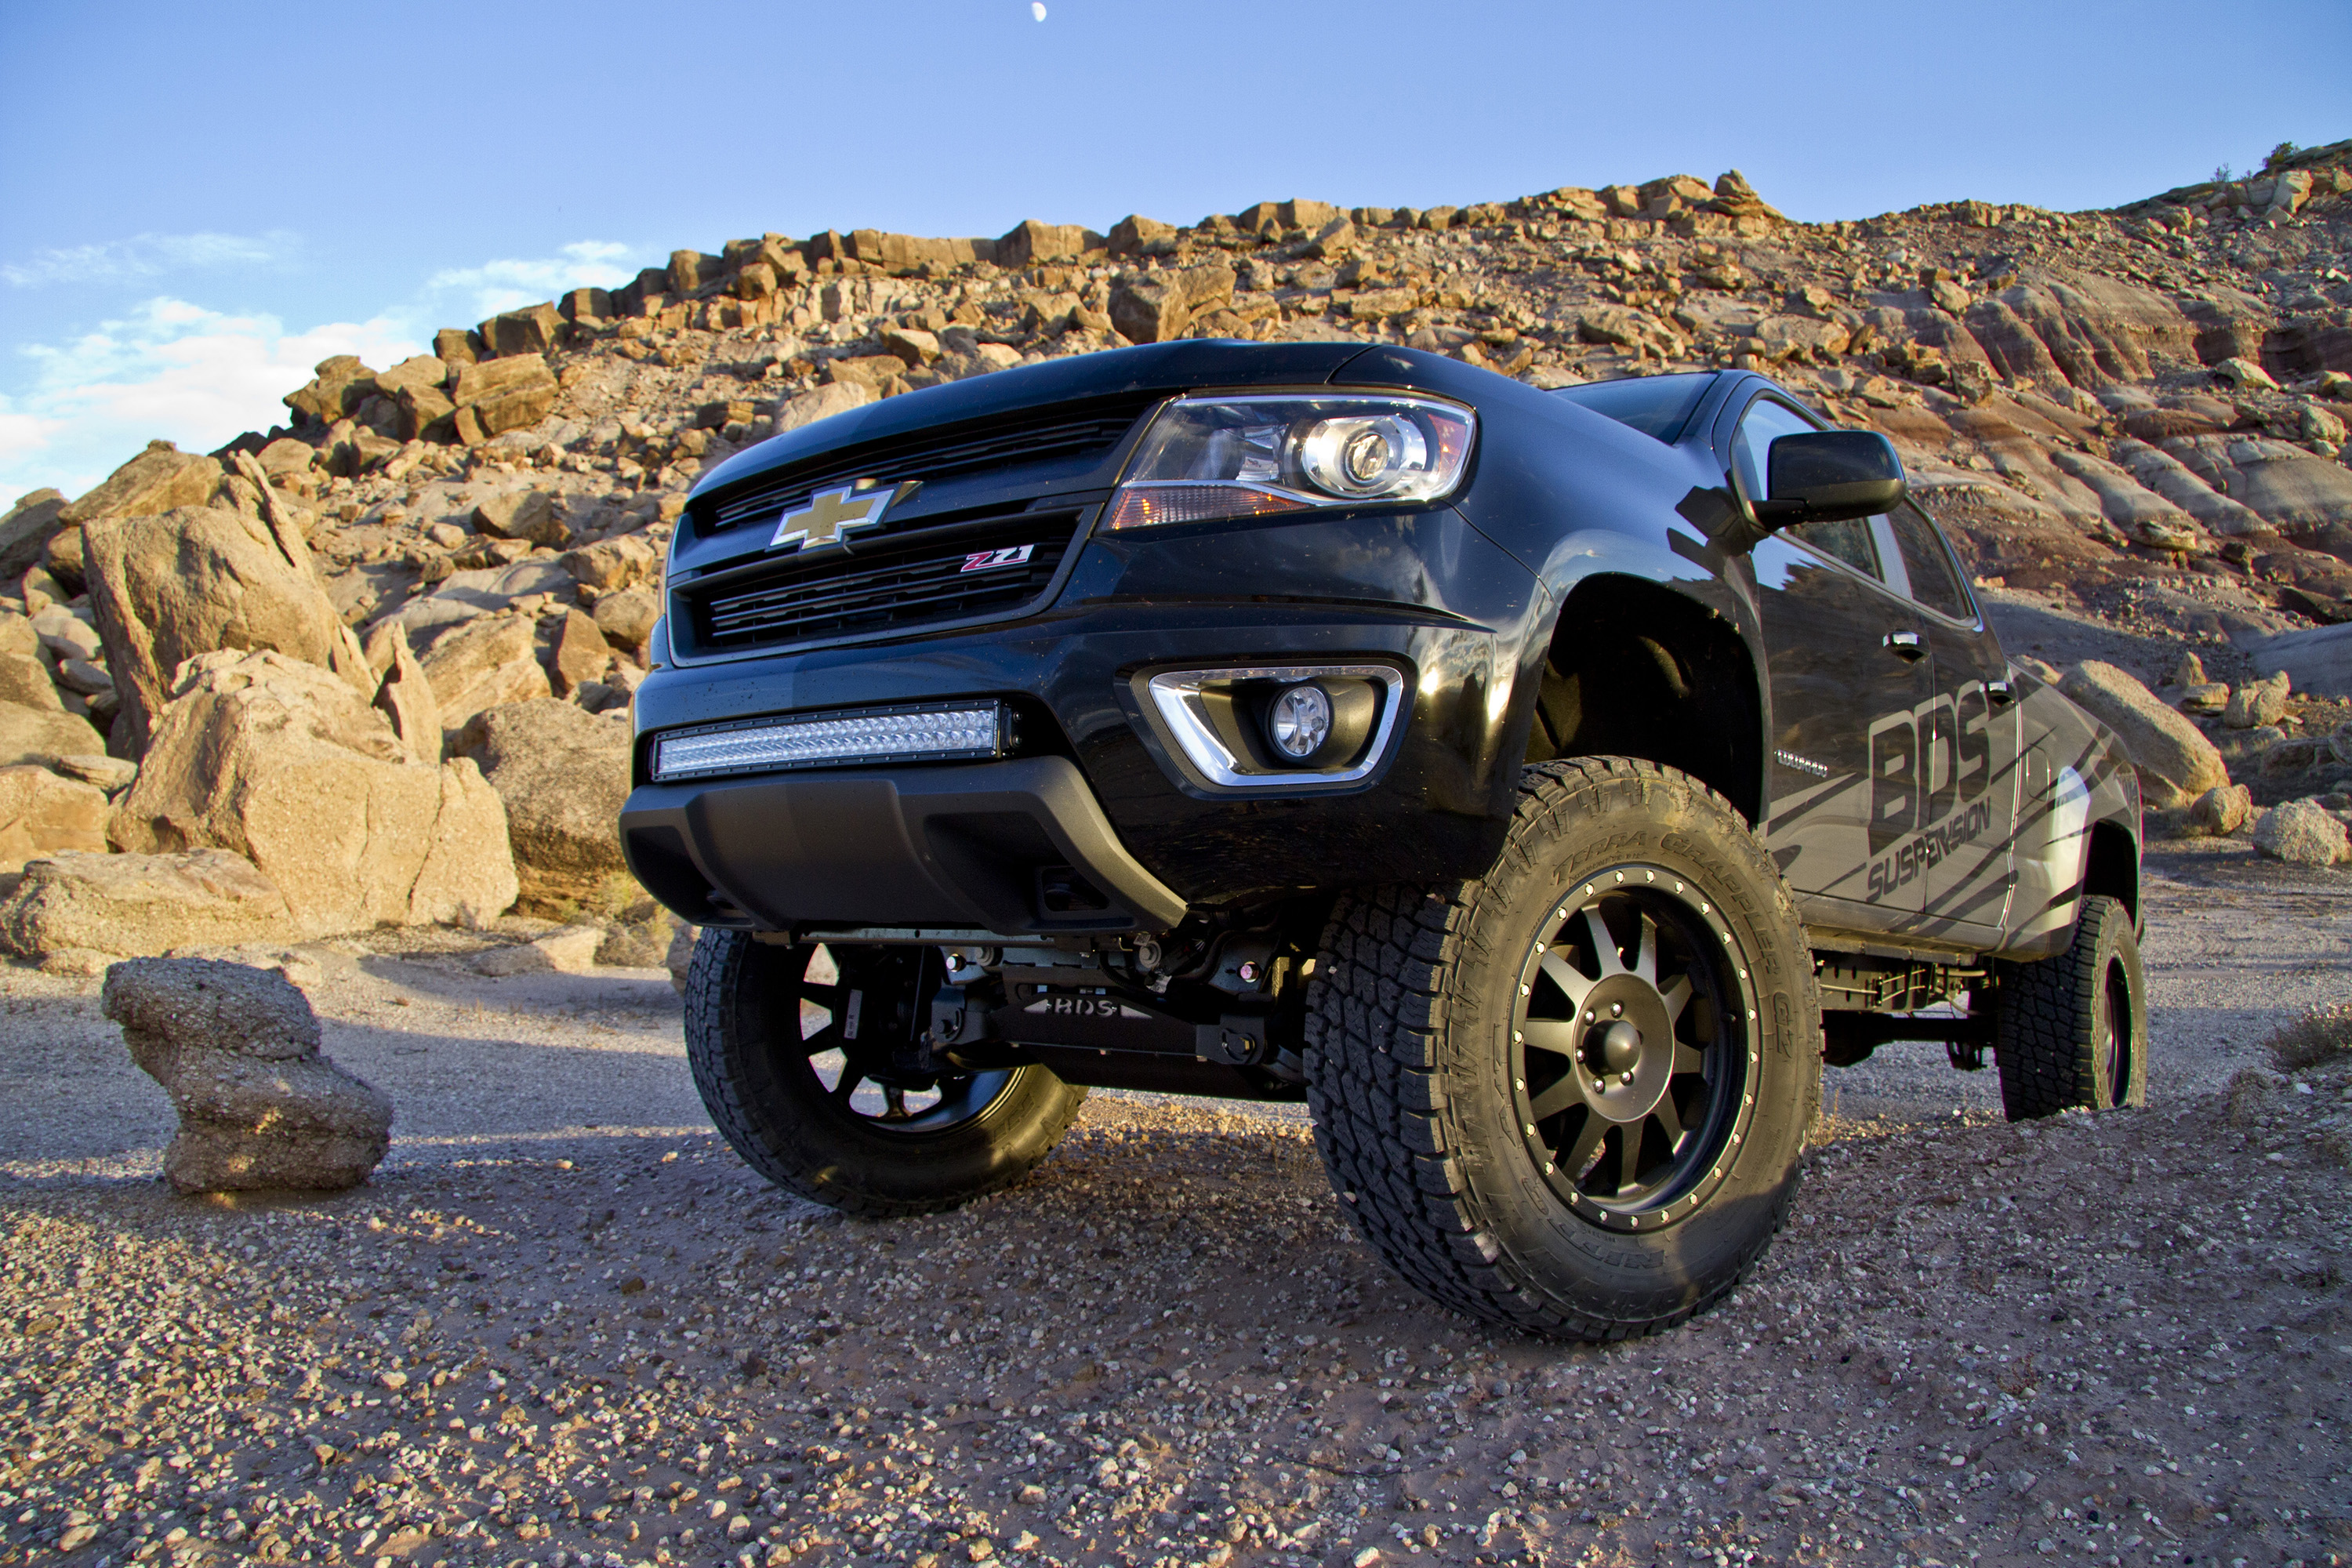 new product announcement #221: 2016 colorado/canyon lift kits   bds  bds suspension news